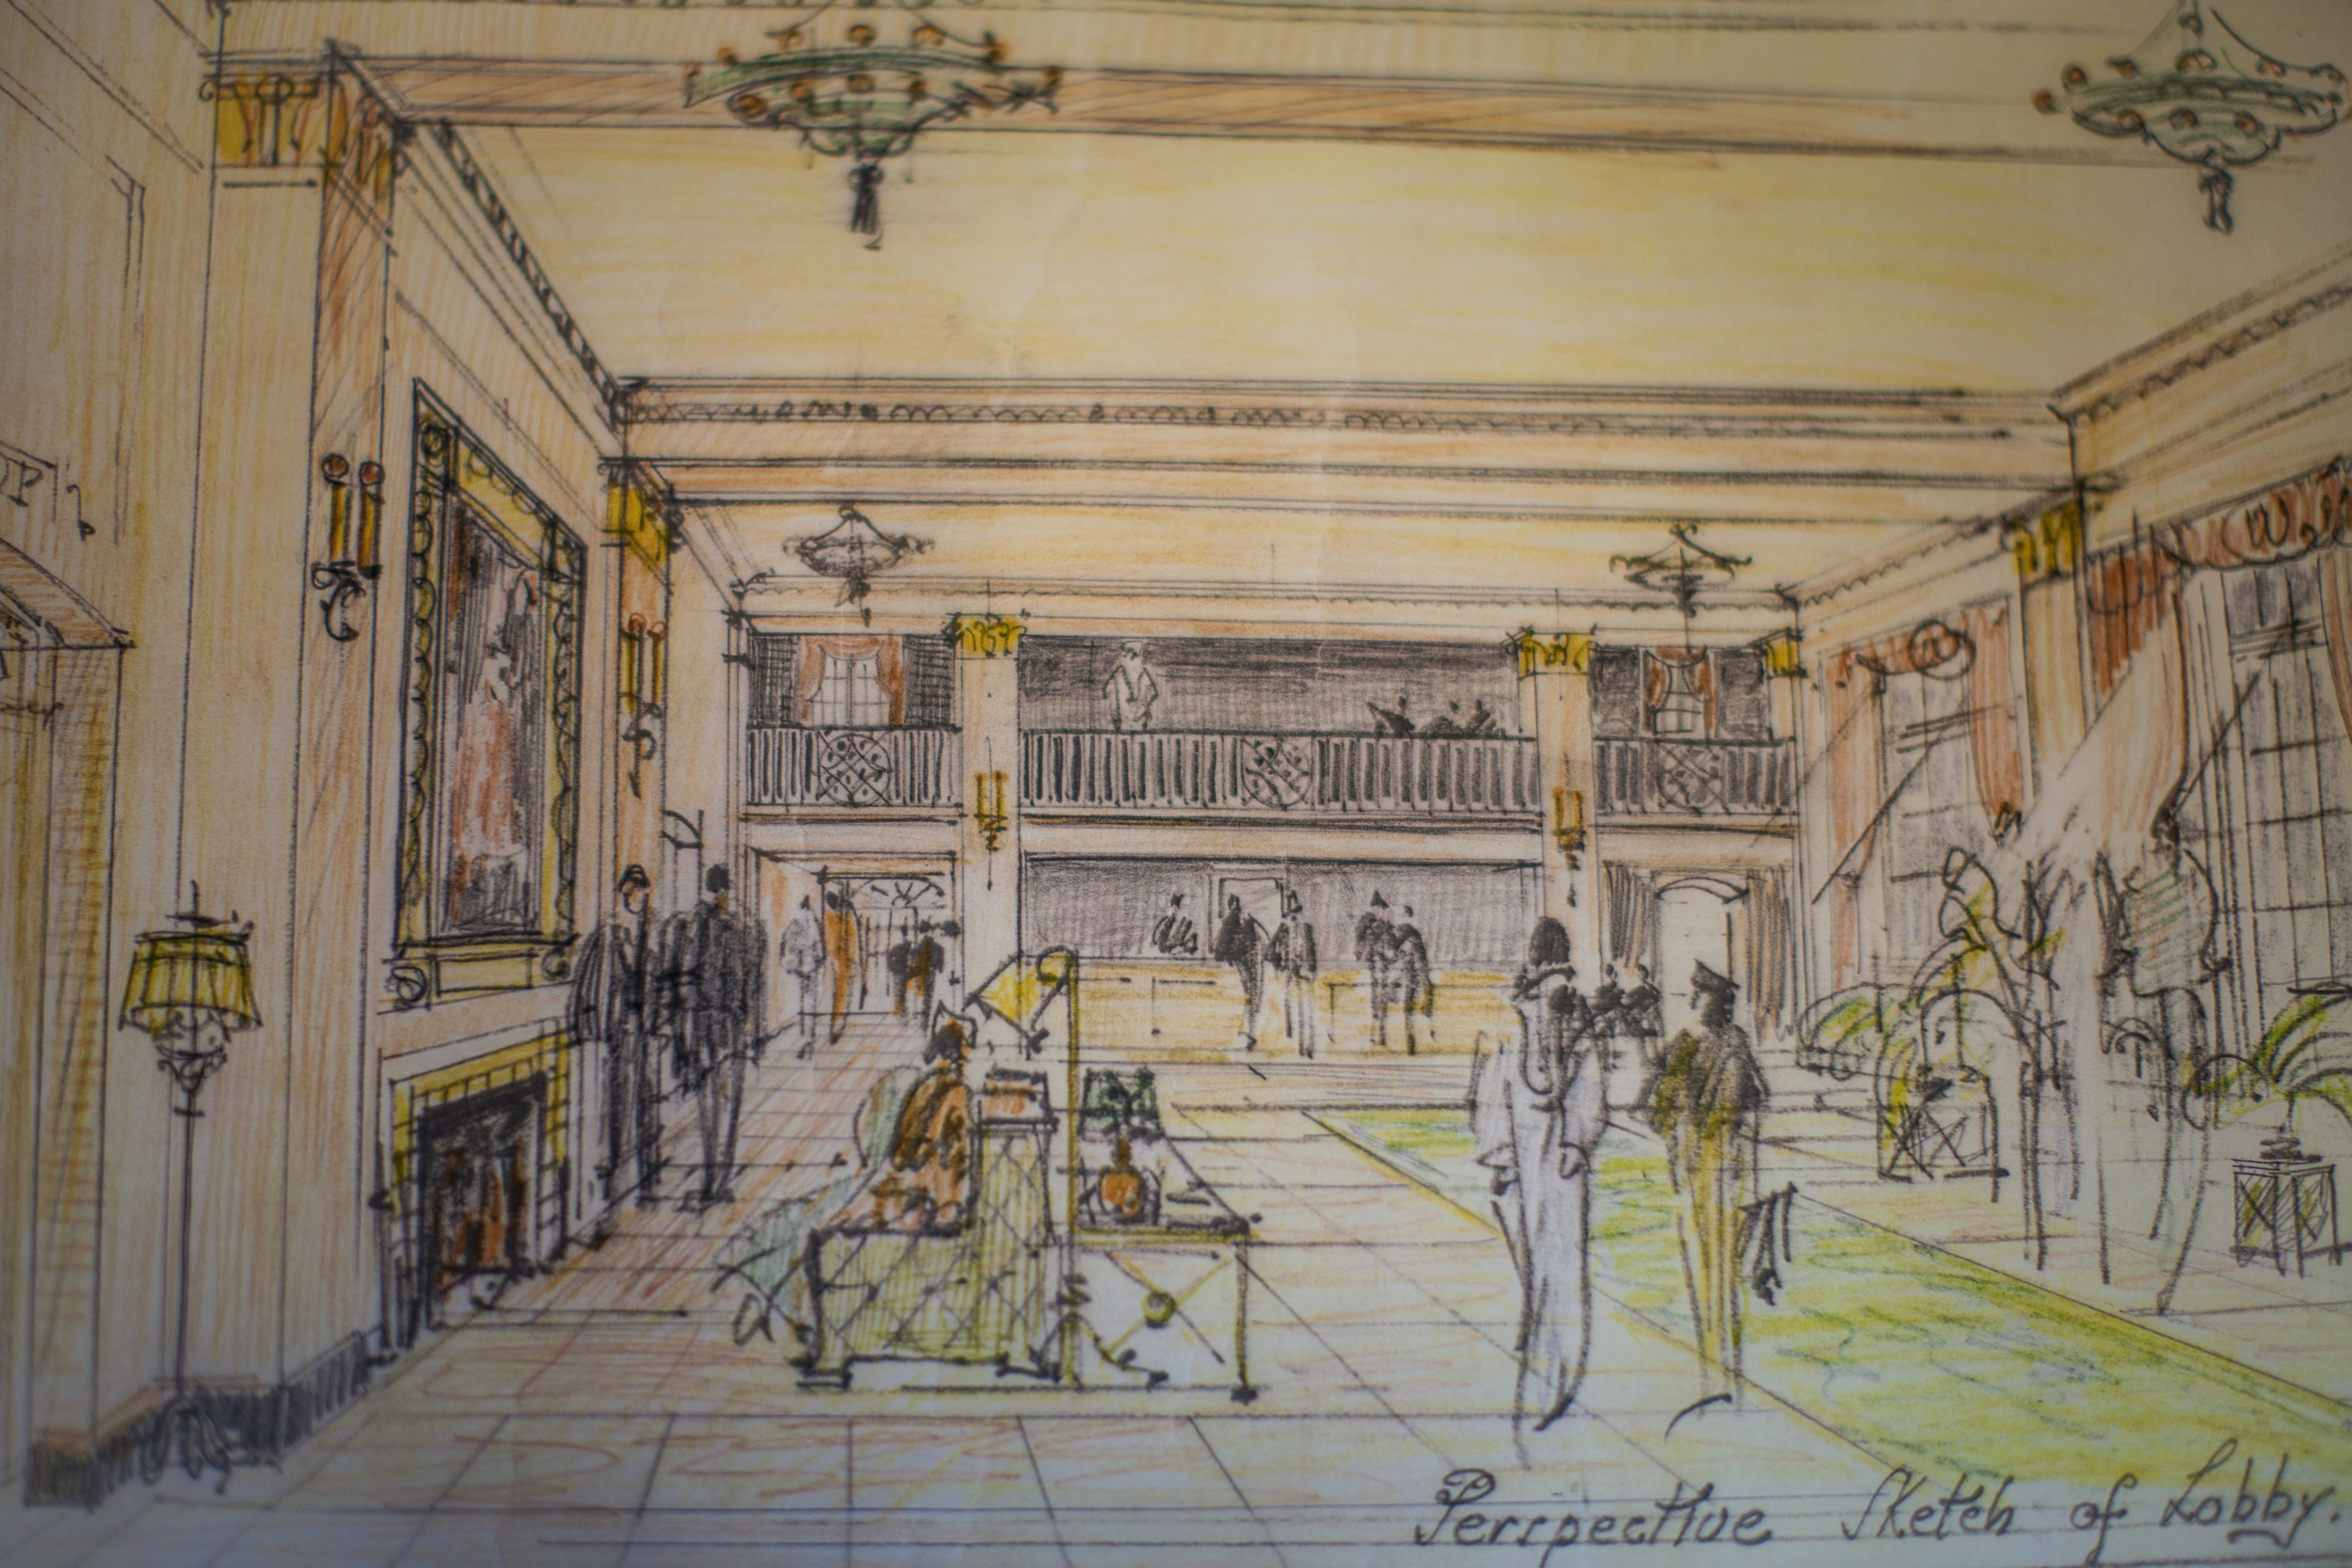 A   Harper and West, Architects   1932 pastel rendering of the proposed Hotel Windham Lobby.